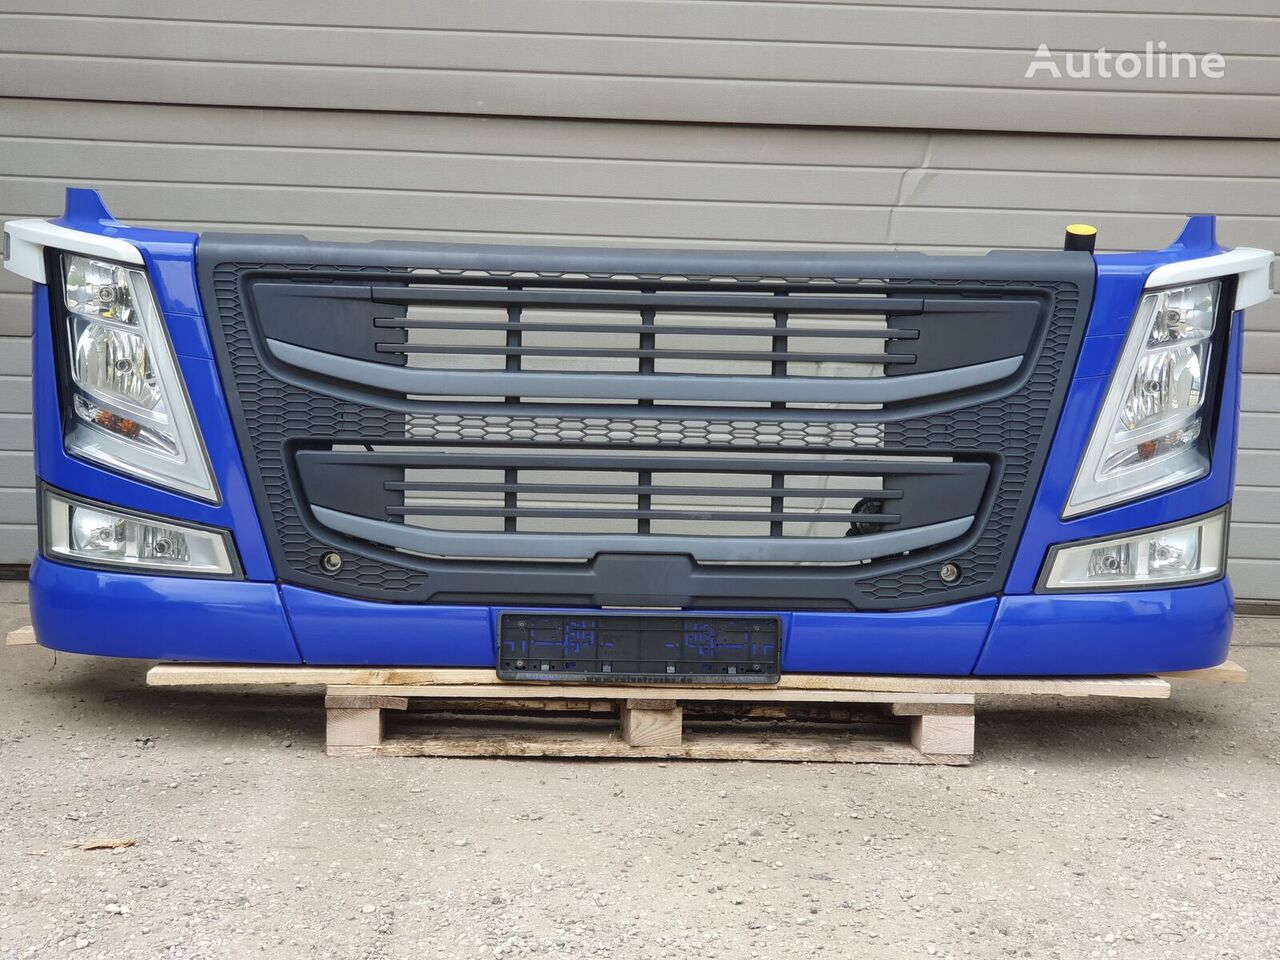 radiator grille for VOLVO FM4 tractor unit